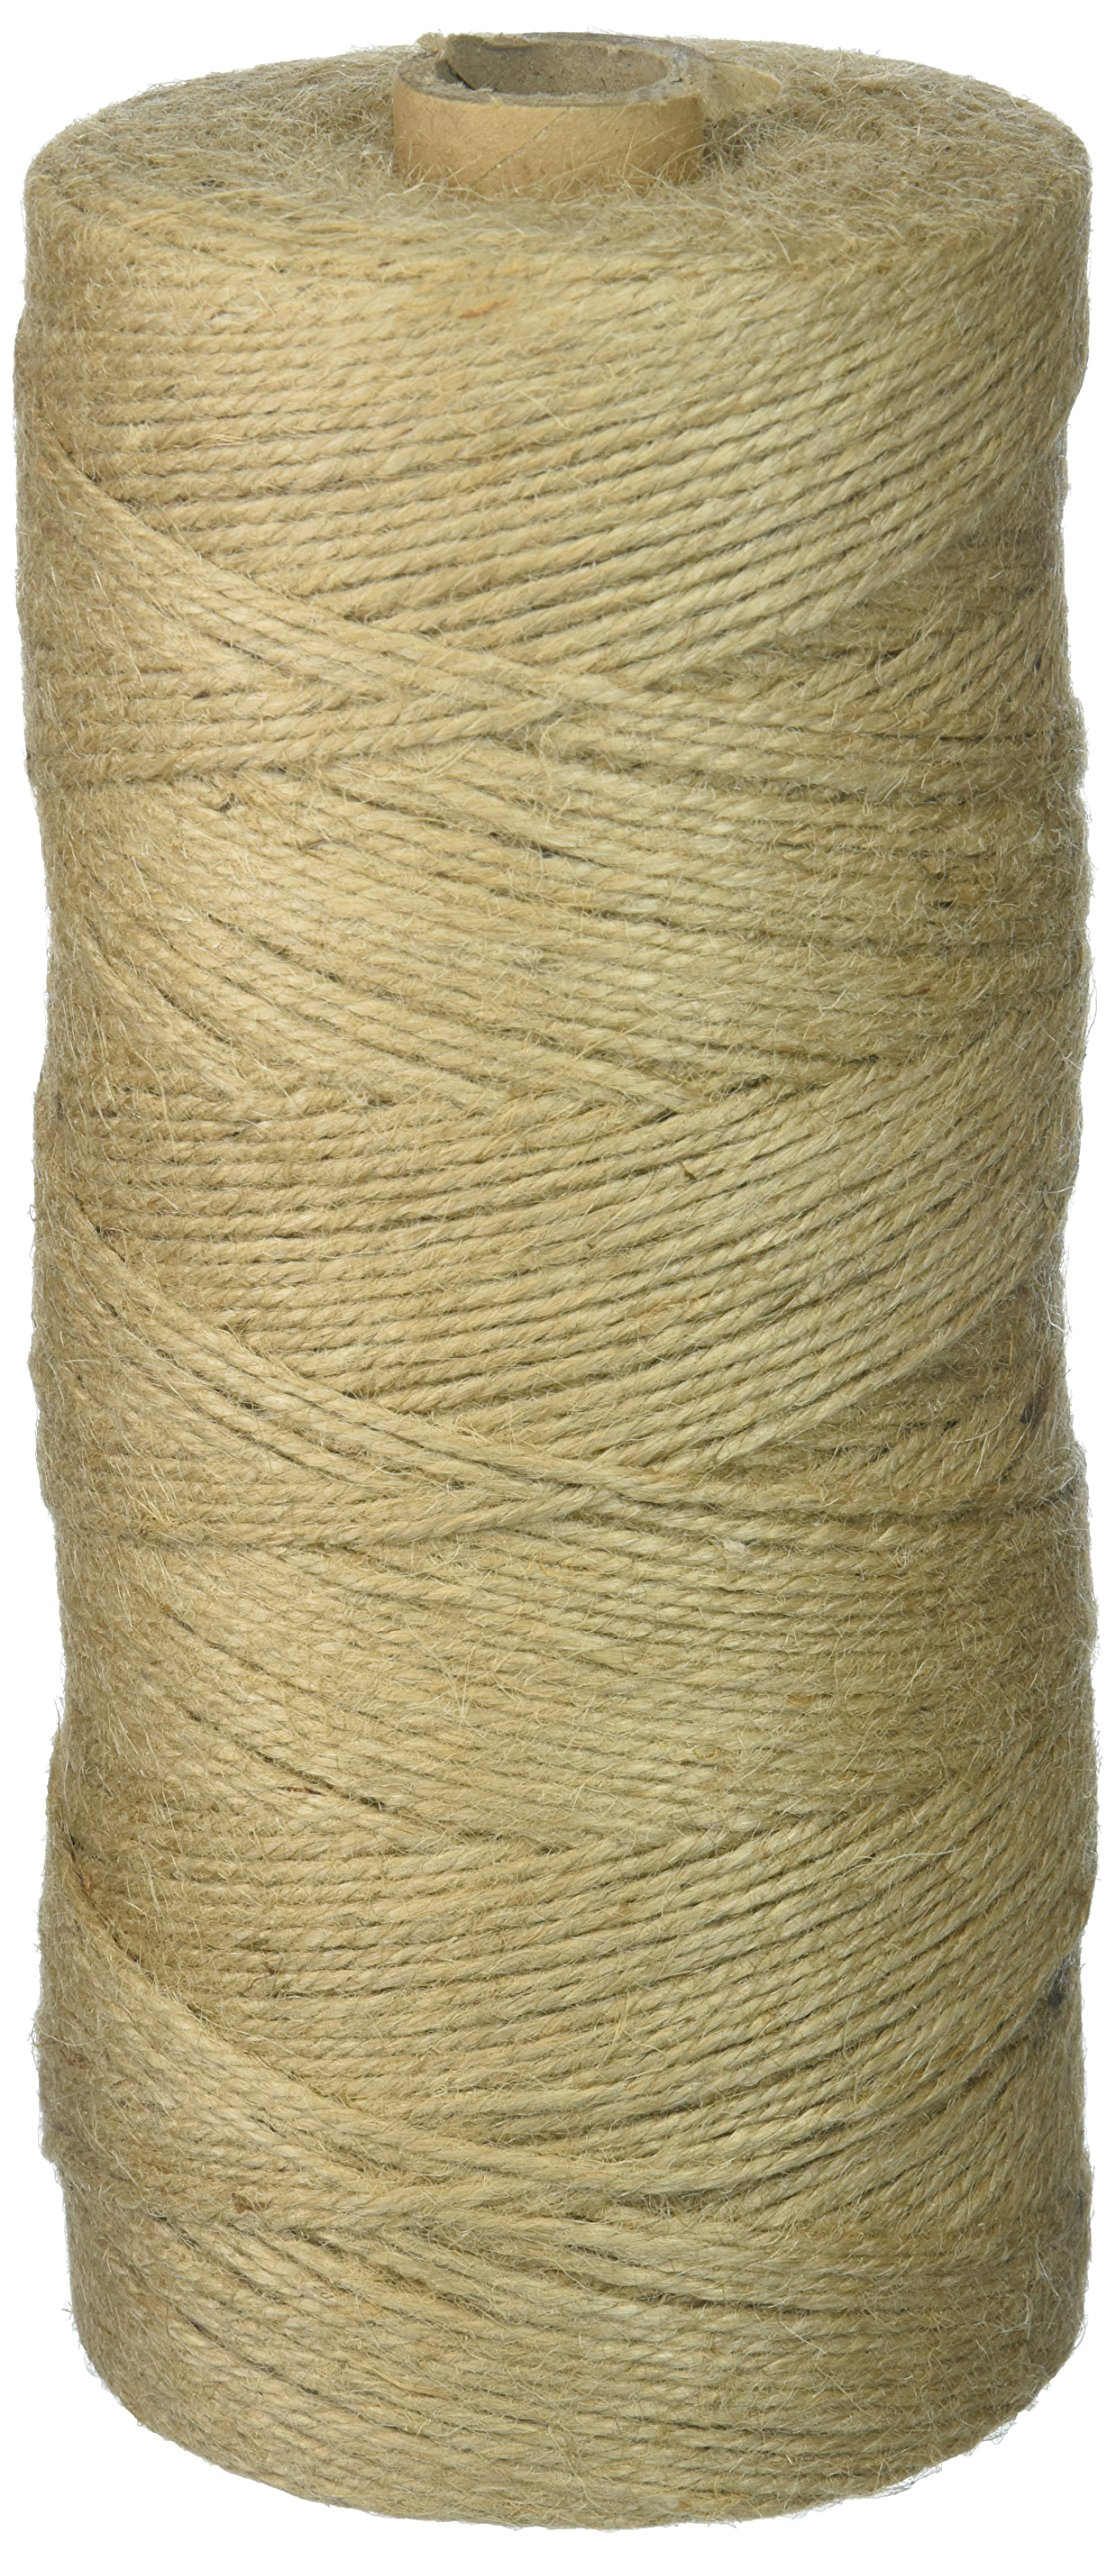 Bond Premium Sisal Twine, 2500' feet-Natural